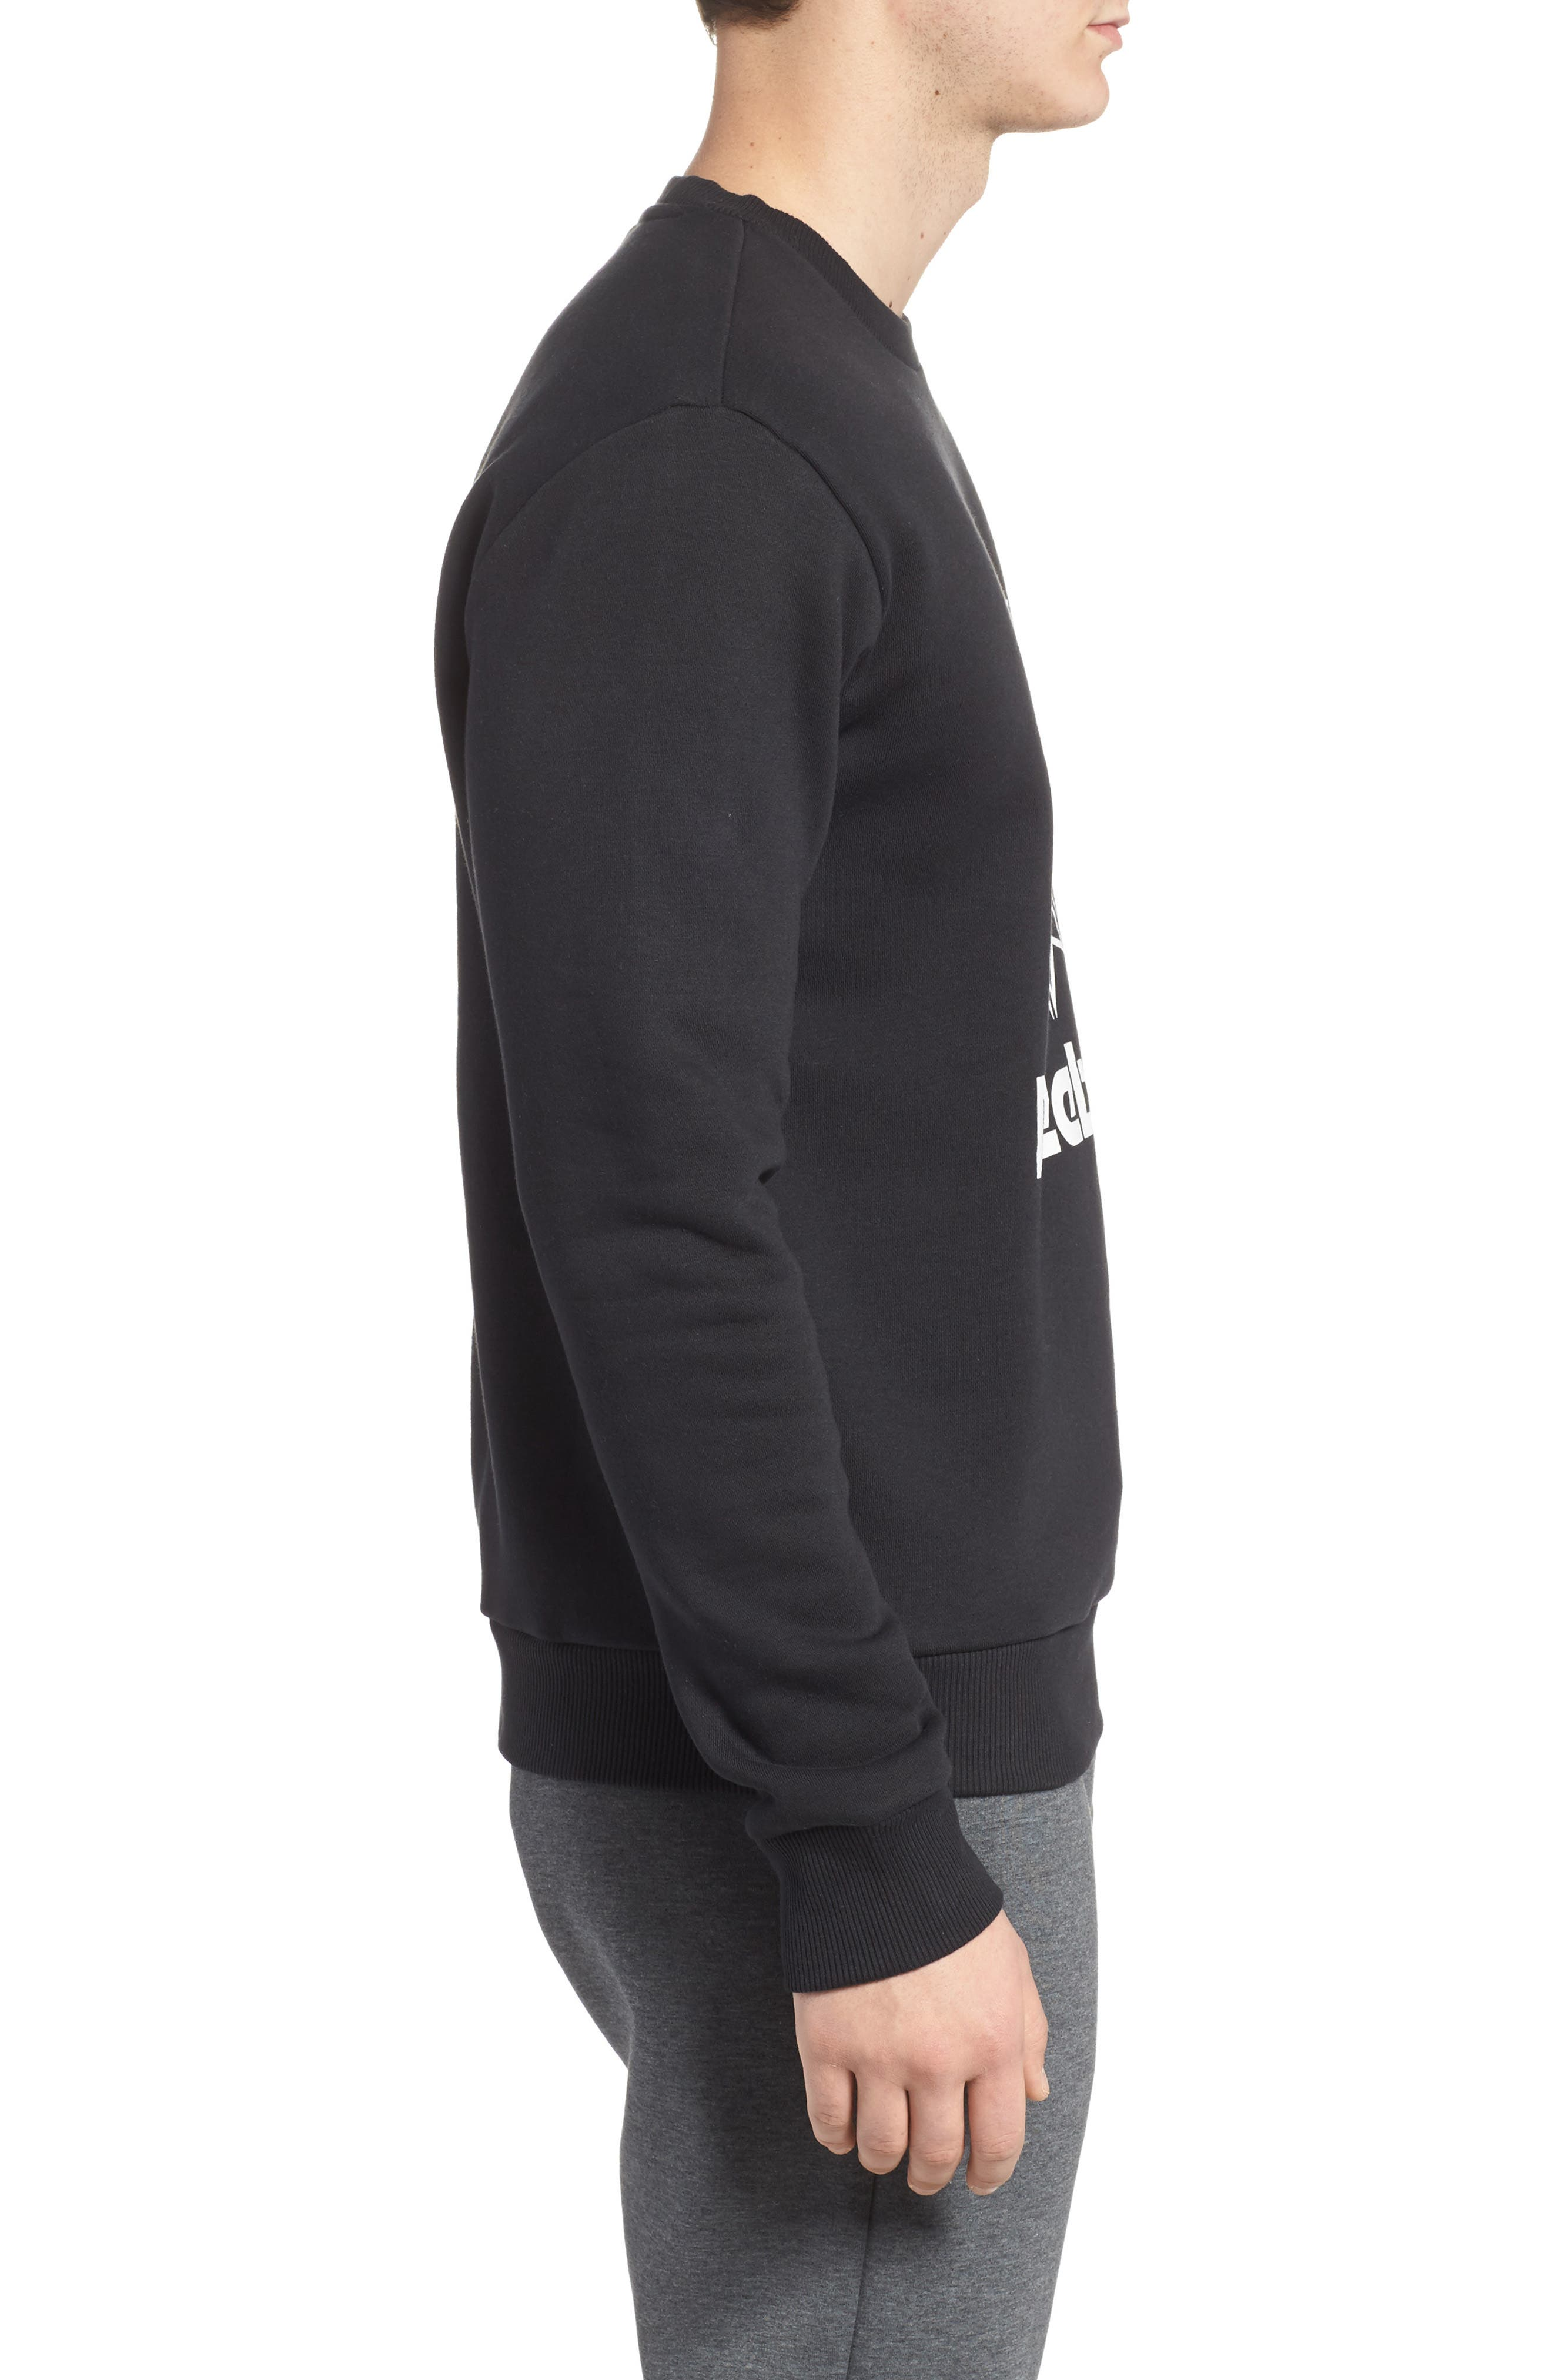 Starcrest Sweatshirt,                             Alternate thumbnail 3, color,                             005